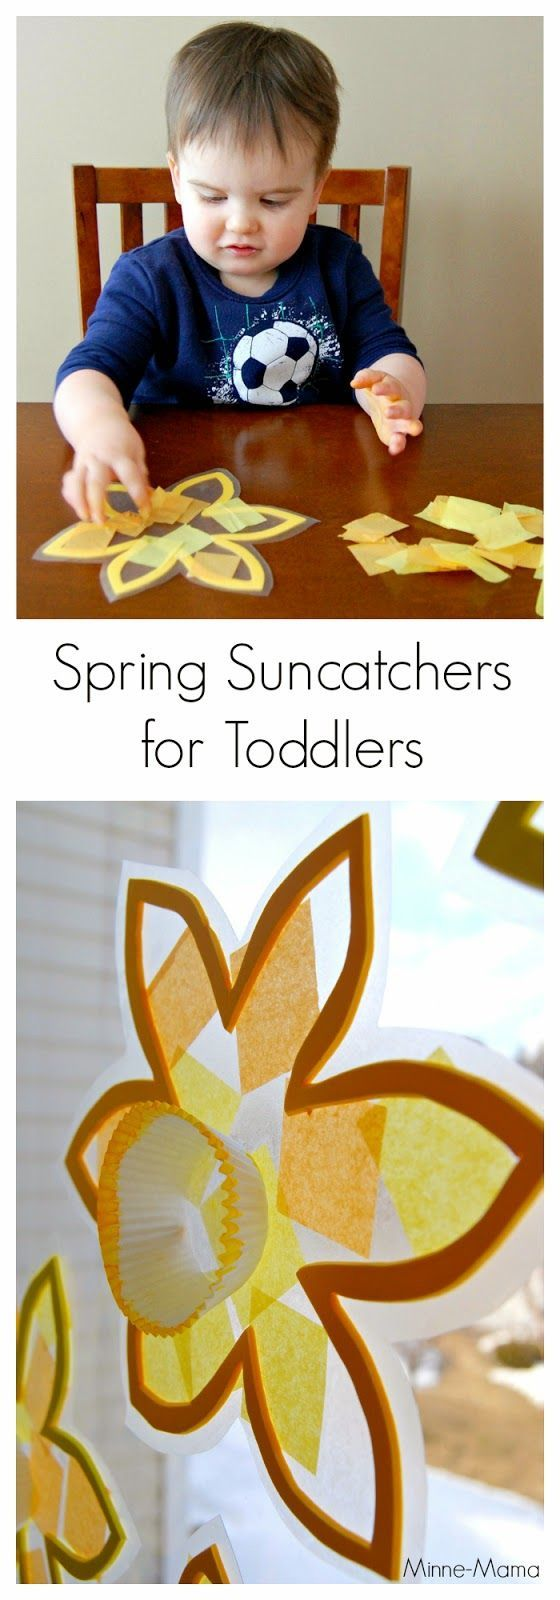 {Guest Post} Toddler-Made Spring Suncatchers